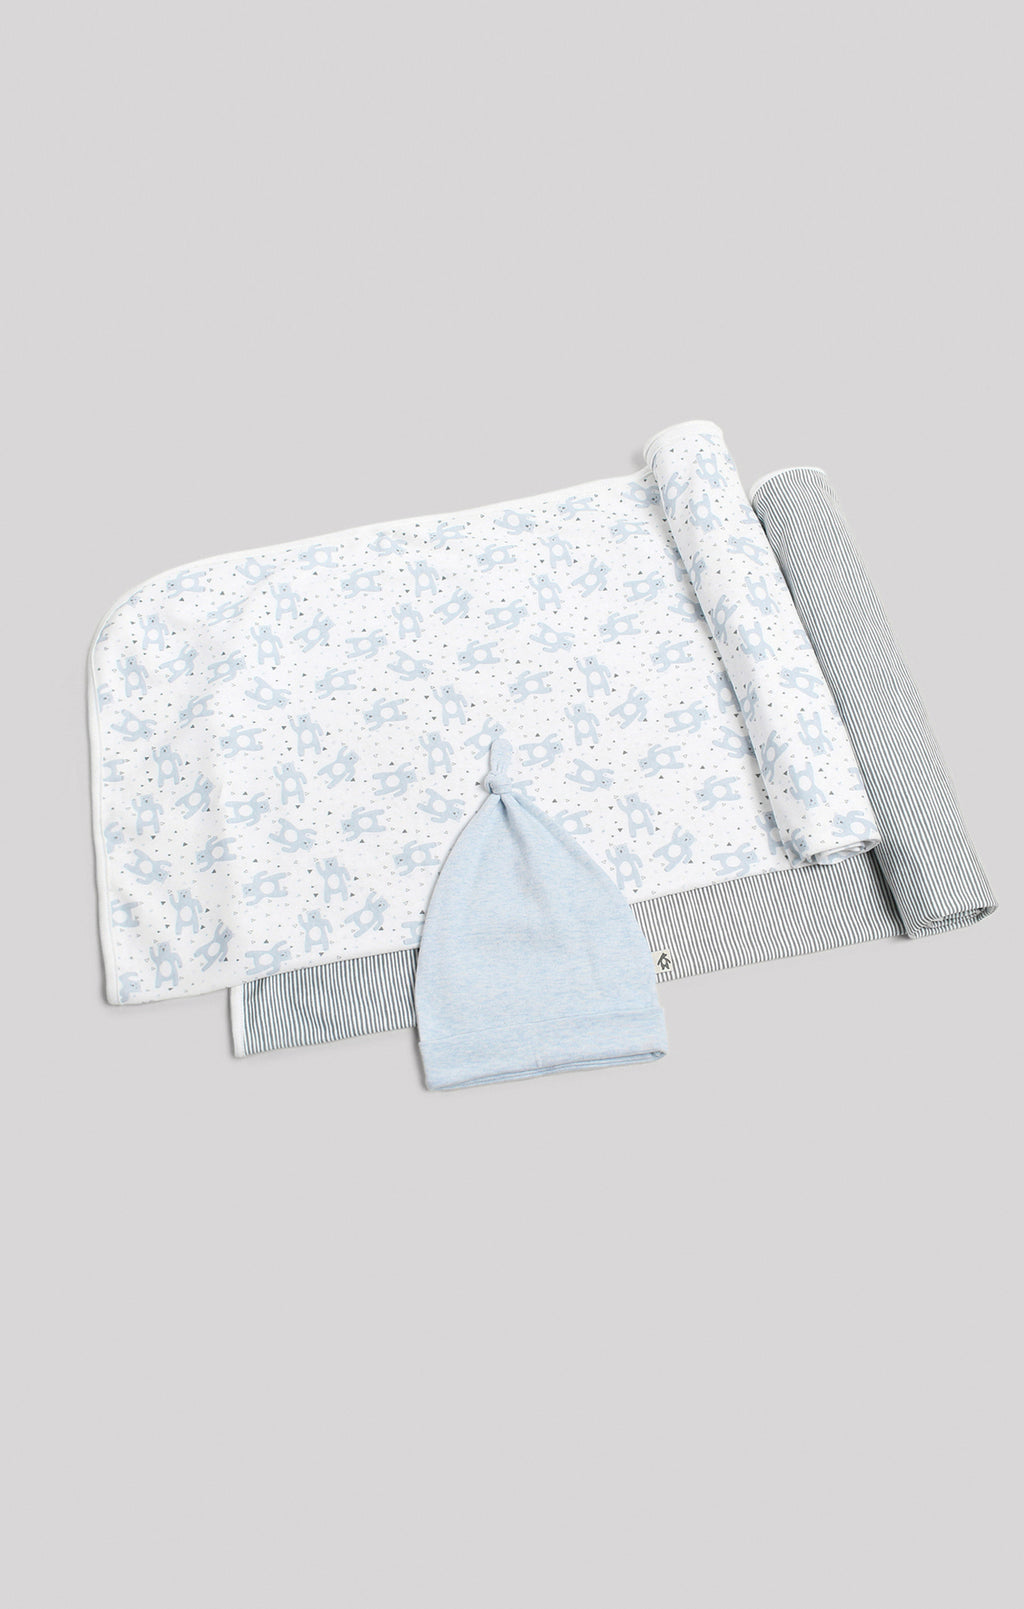 Blanket | 2 Receiving Blankets & Beanie Set - Bears & Stripes